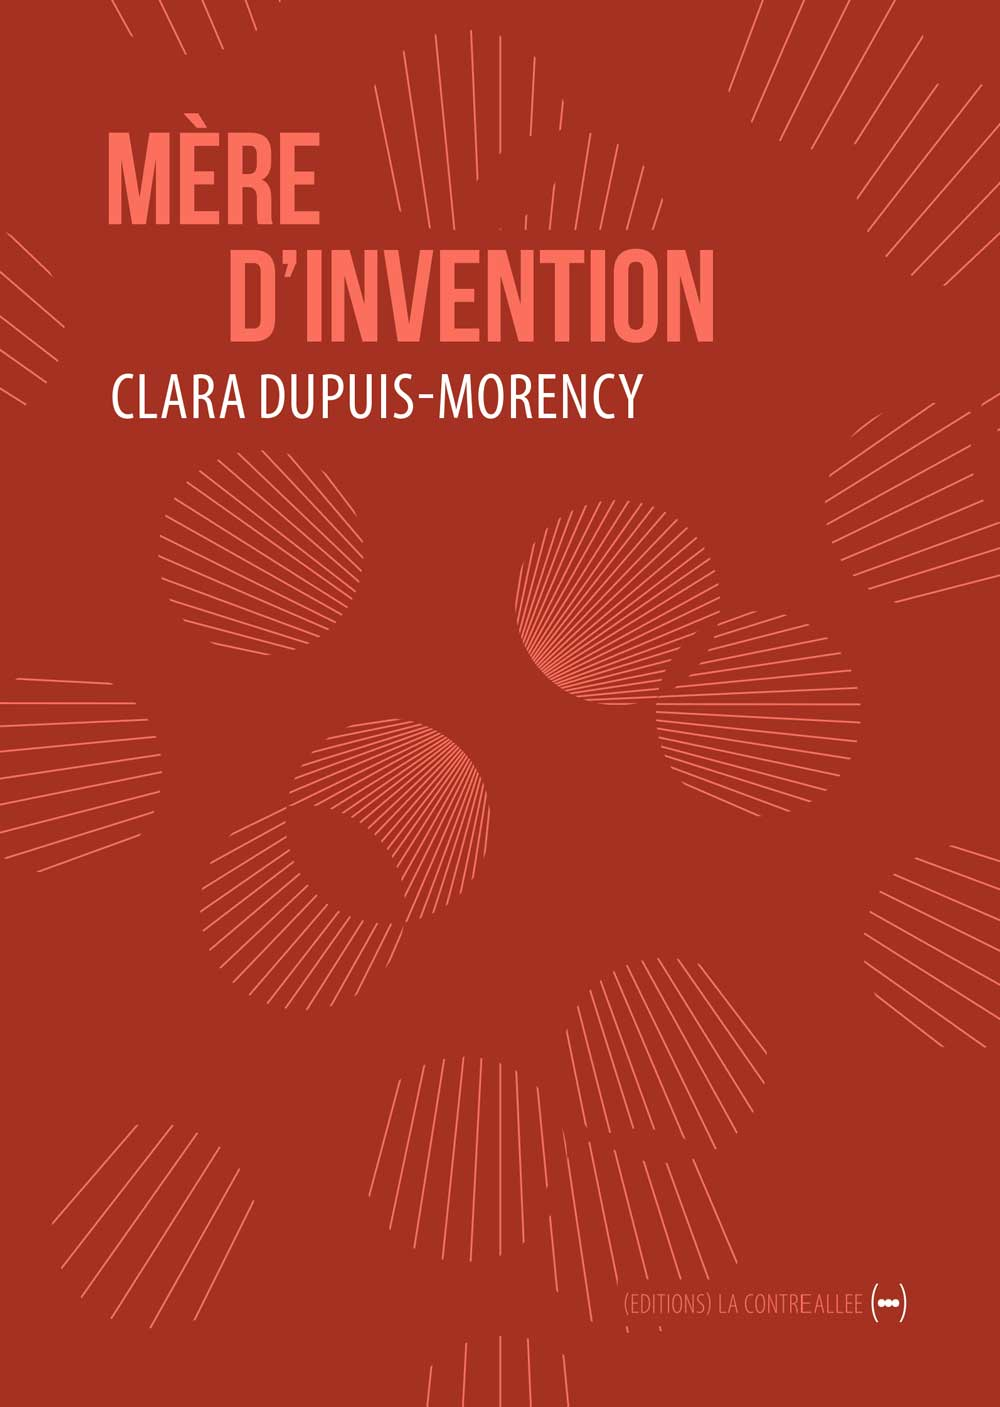 meredinvention_couverture